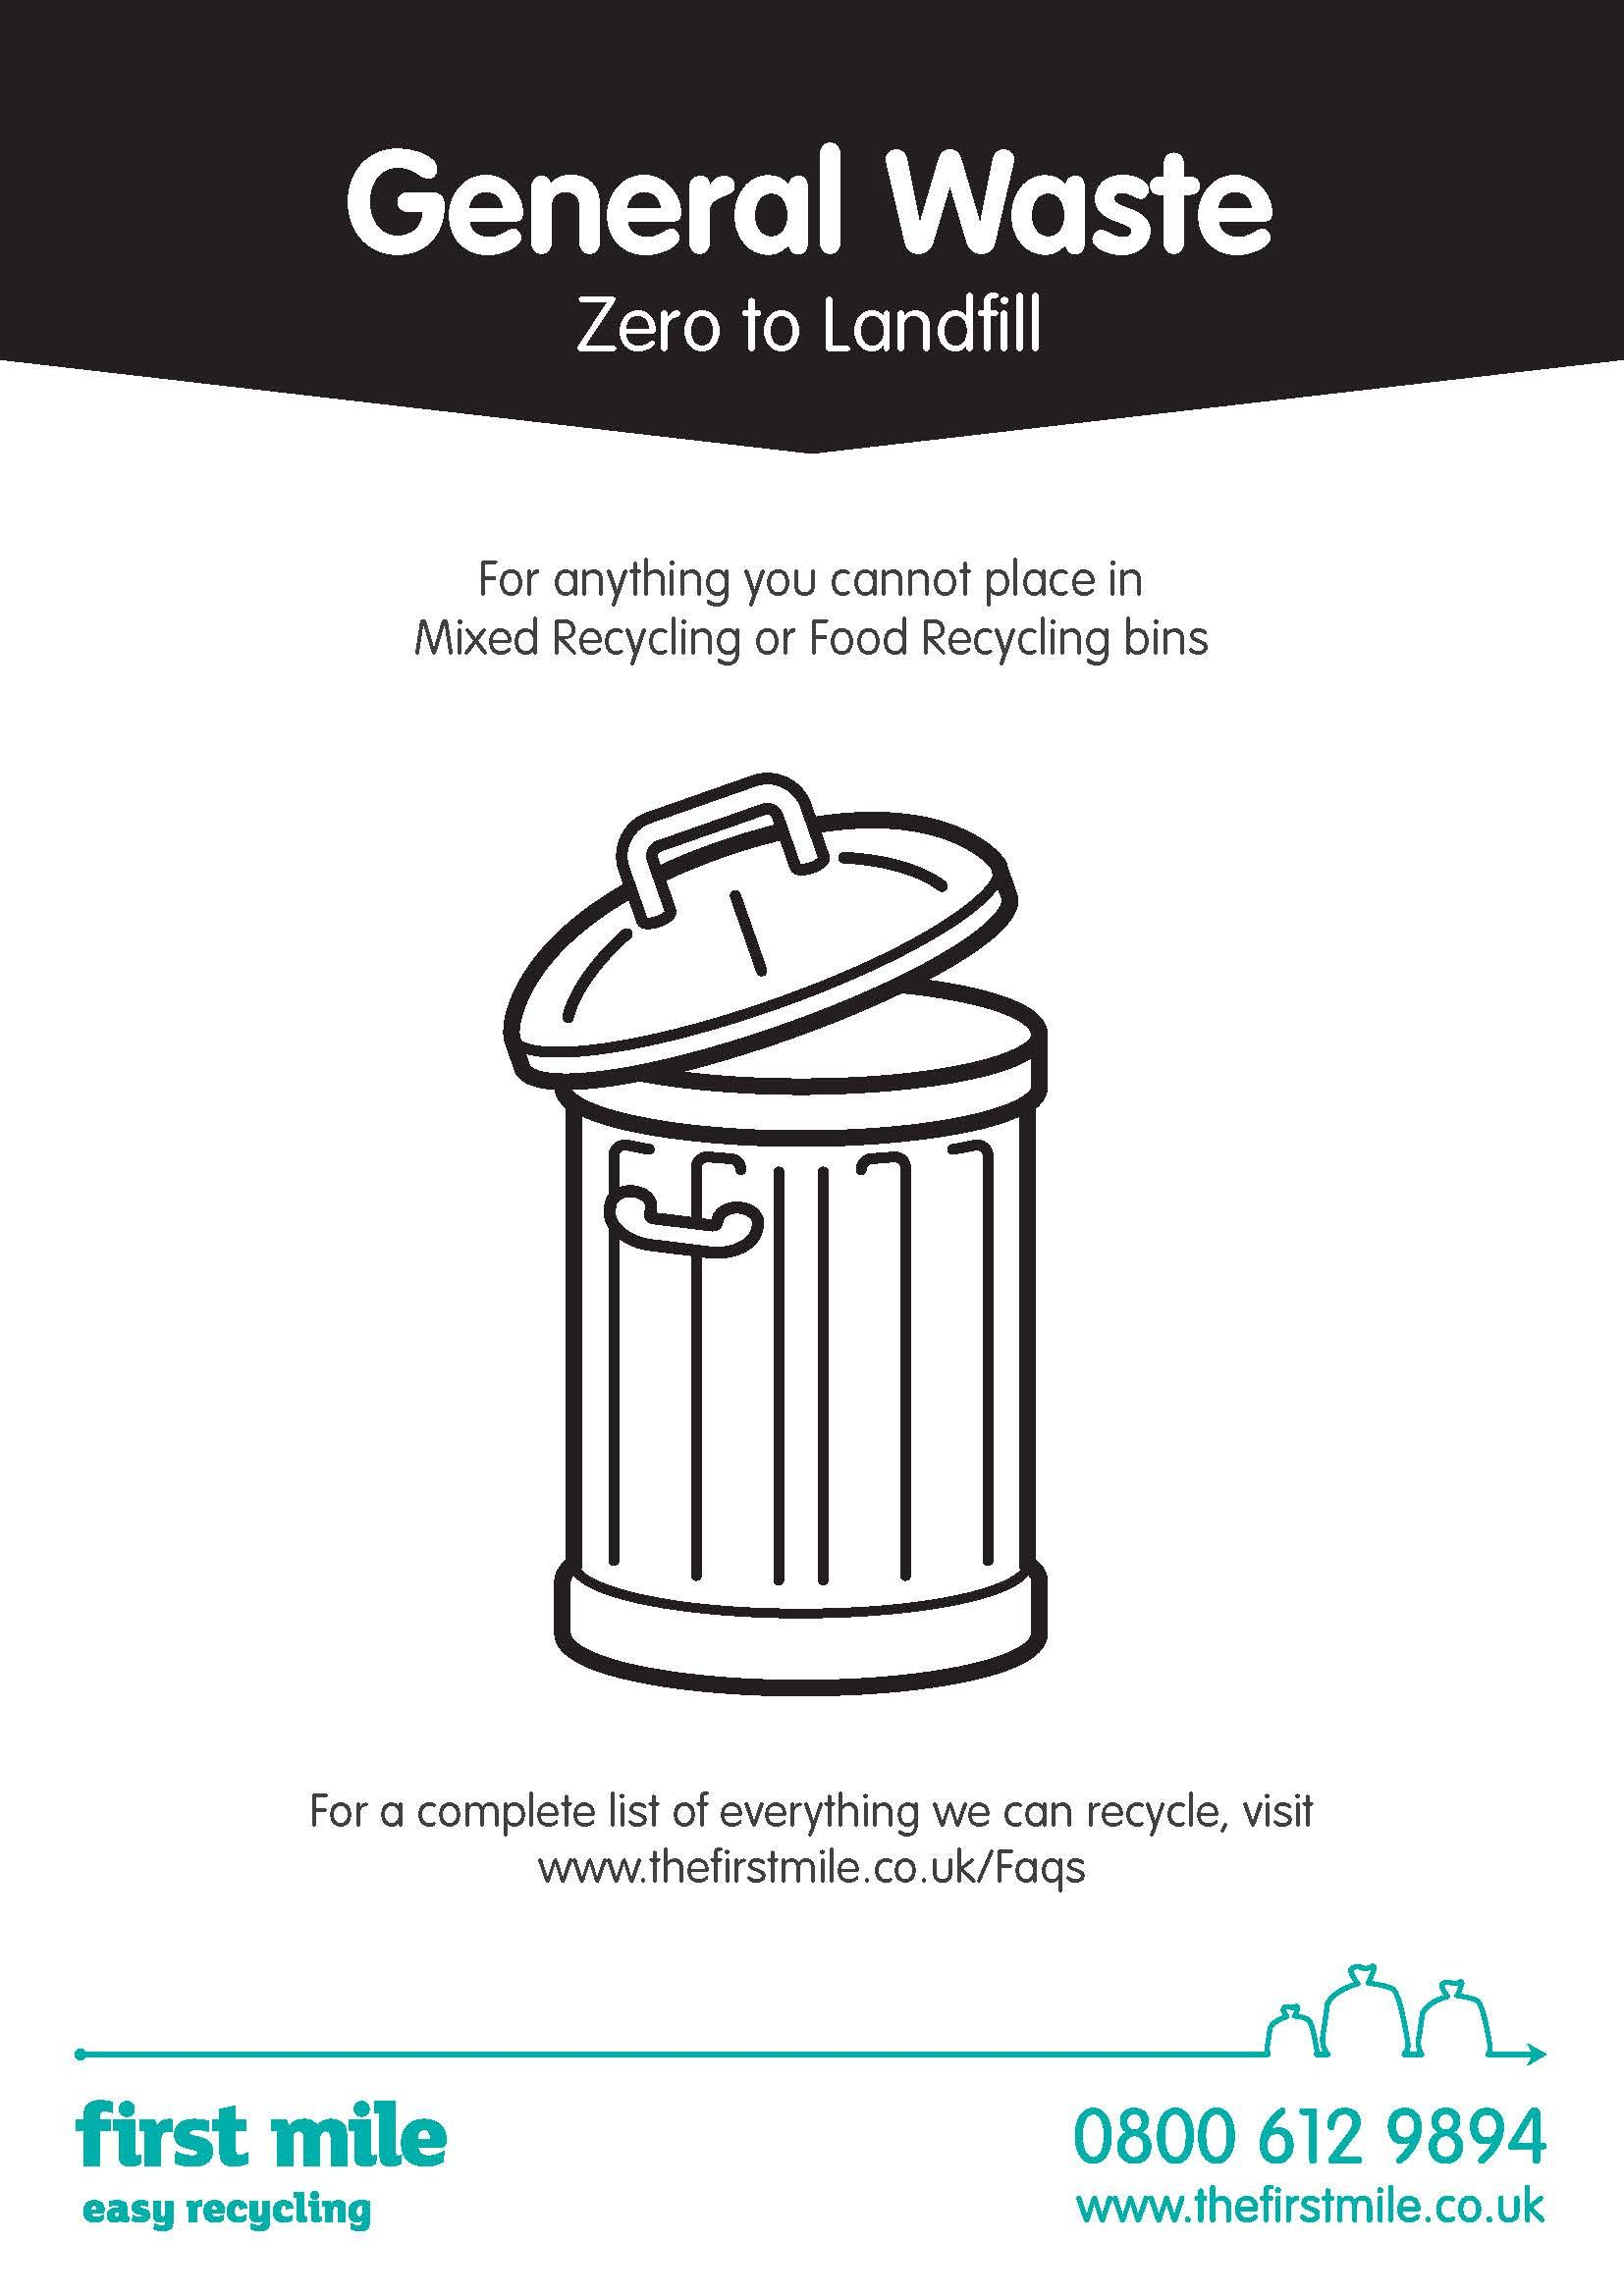 Zero to Landfill General Waste Poster